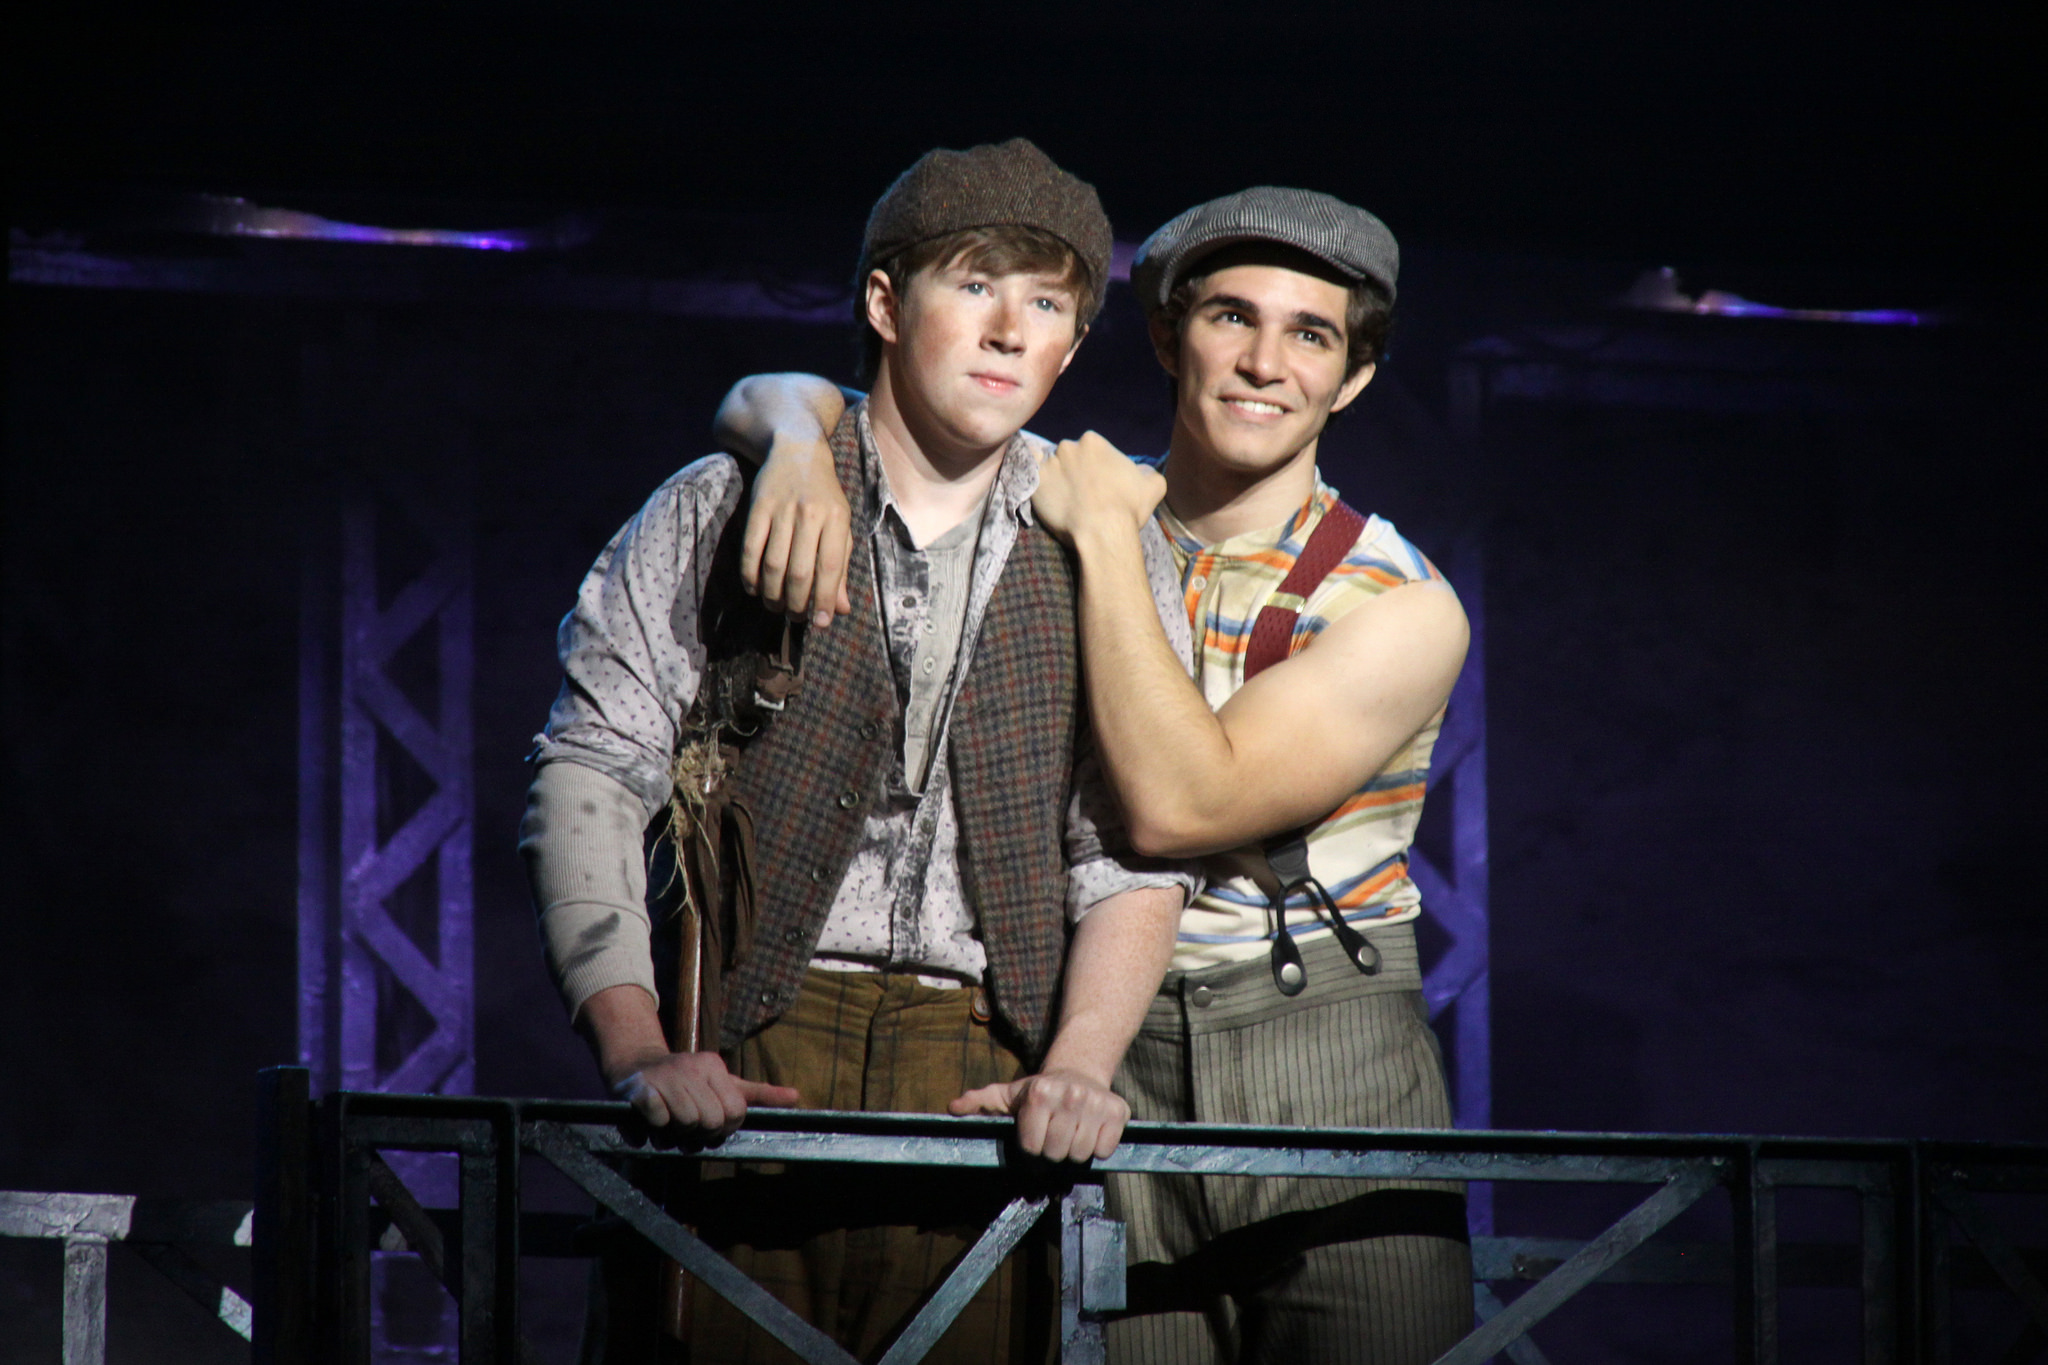 Newsies - Zachary Sayle (Crutchie) and Joey Barreiro (Jack Kelly). ©Disney. Photo by Shane Gutierrez